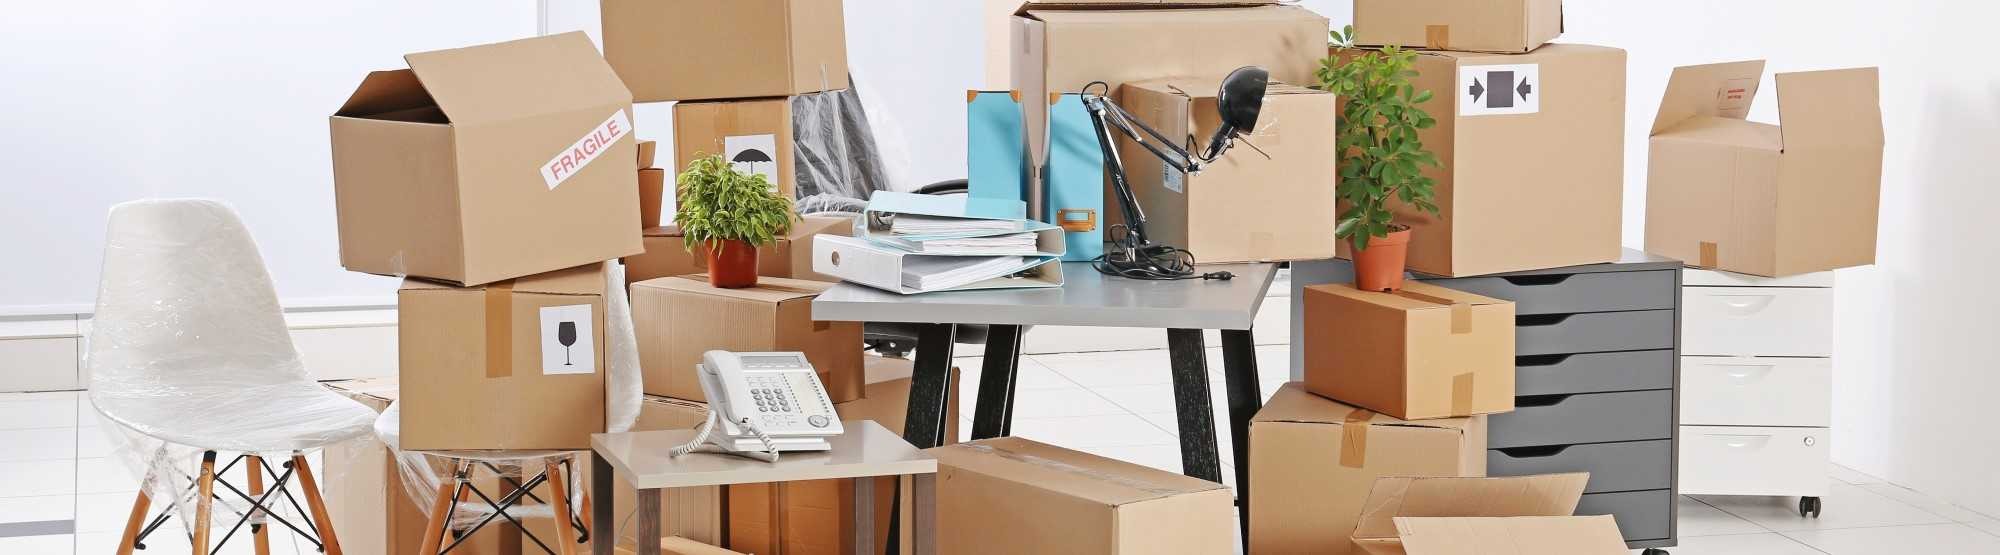 Business Storage for Office